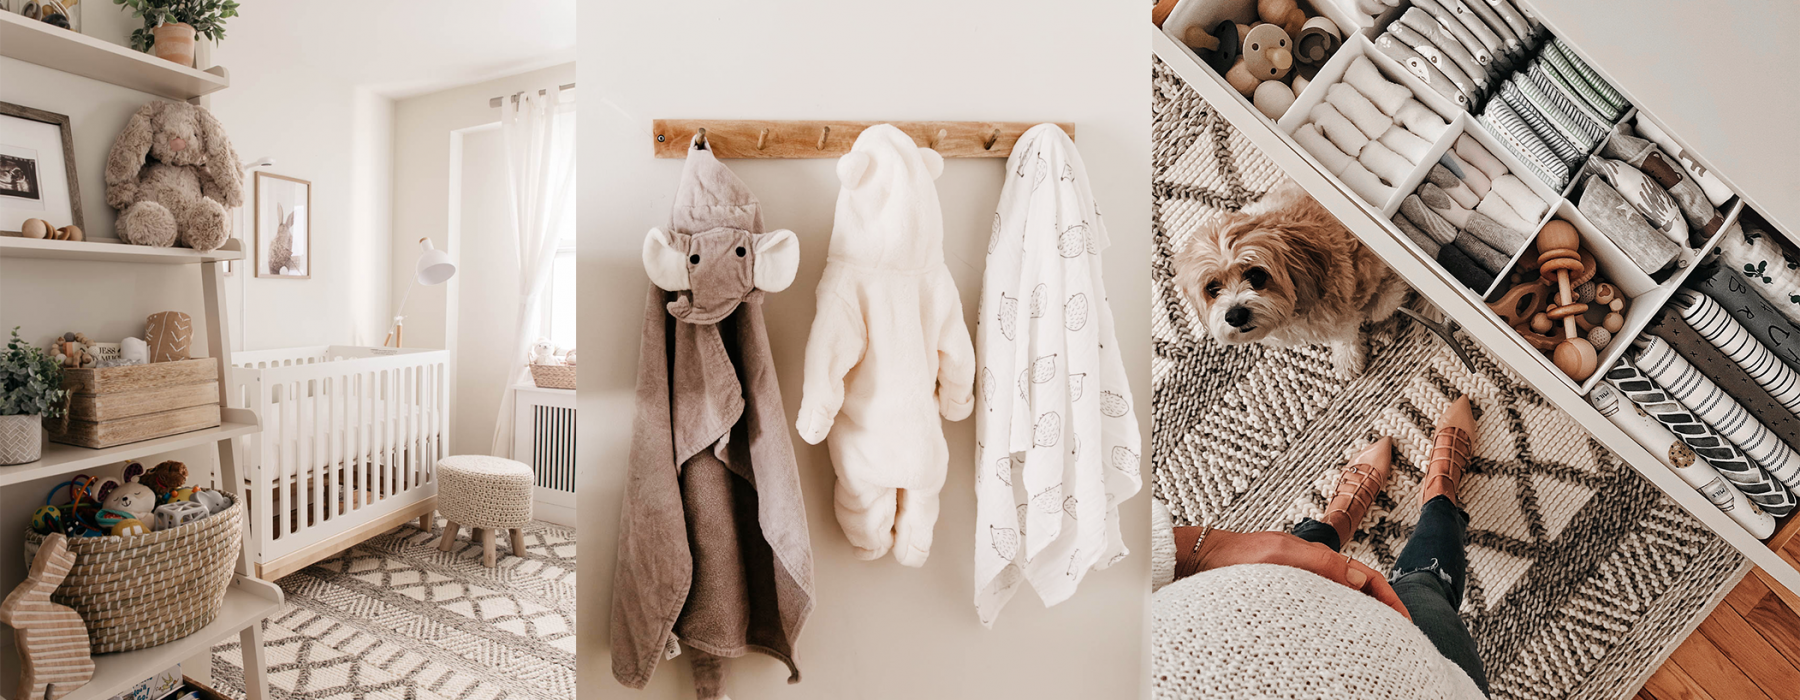 Nursery Reveal! A Gender Neutral Nursery Look with Blogger Kendall Kremer